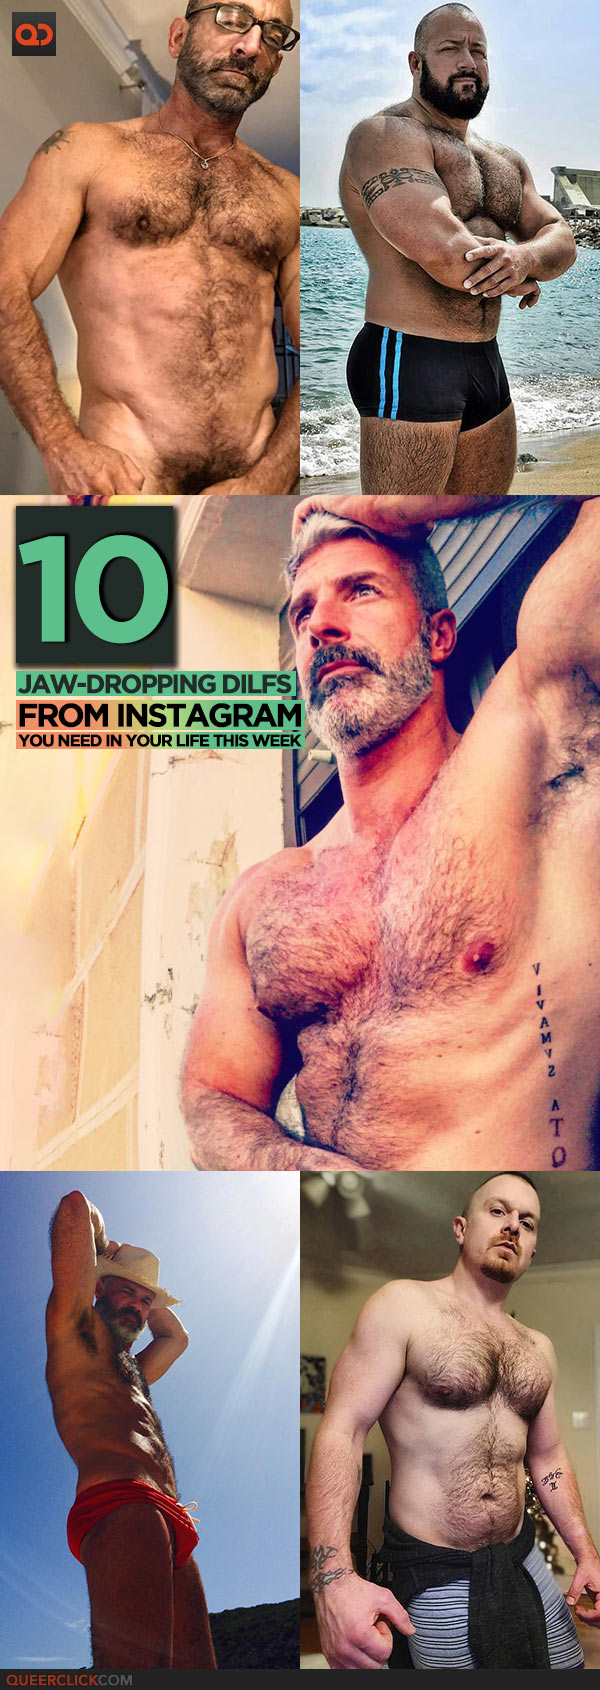 Ten Jaw-Dropping DILFs From Instagram You Need In Your Life This Week!